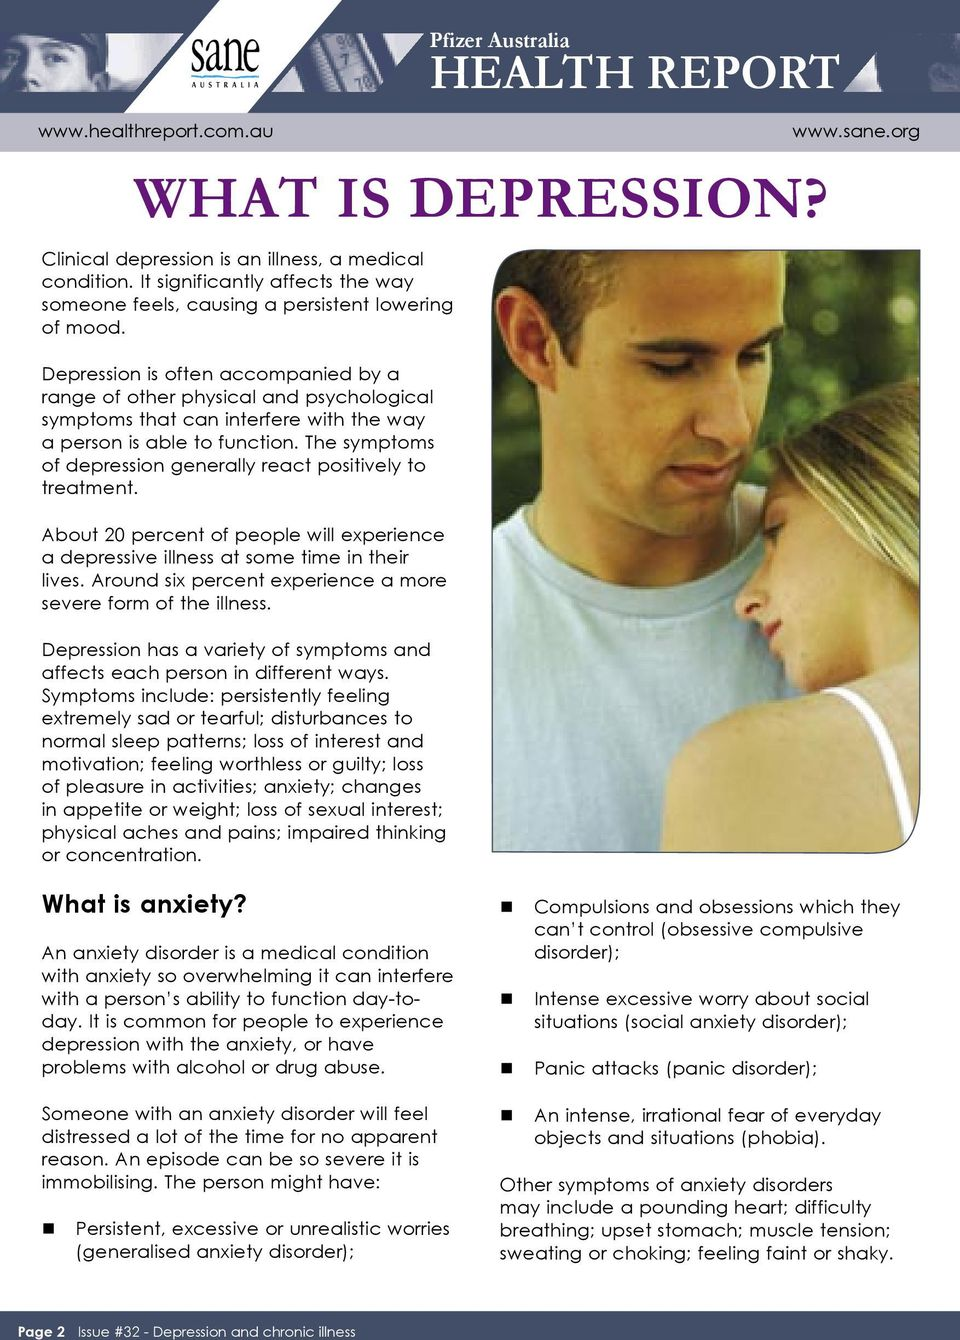 The symptoms of depression generally react positively to treatment. About 20 percent of people will experience a depressive illness at some time in their lives.